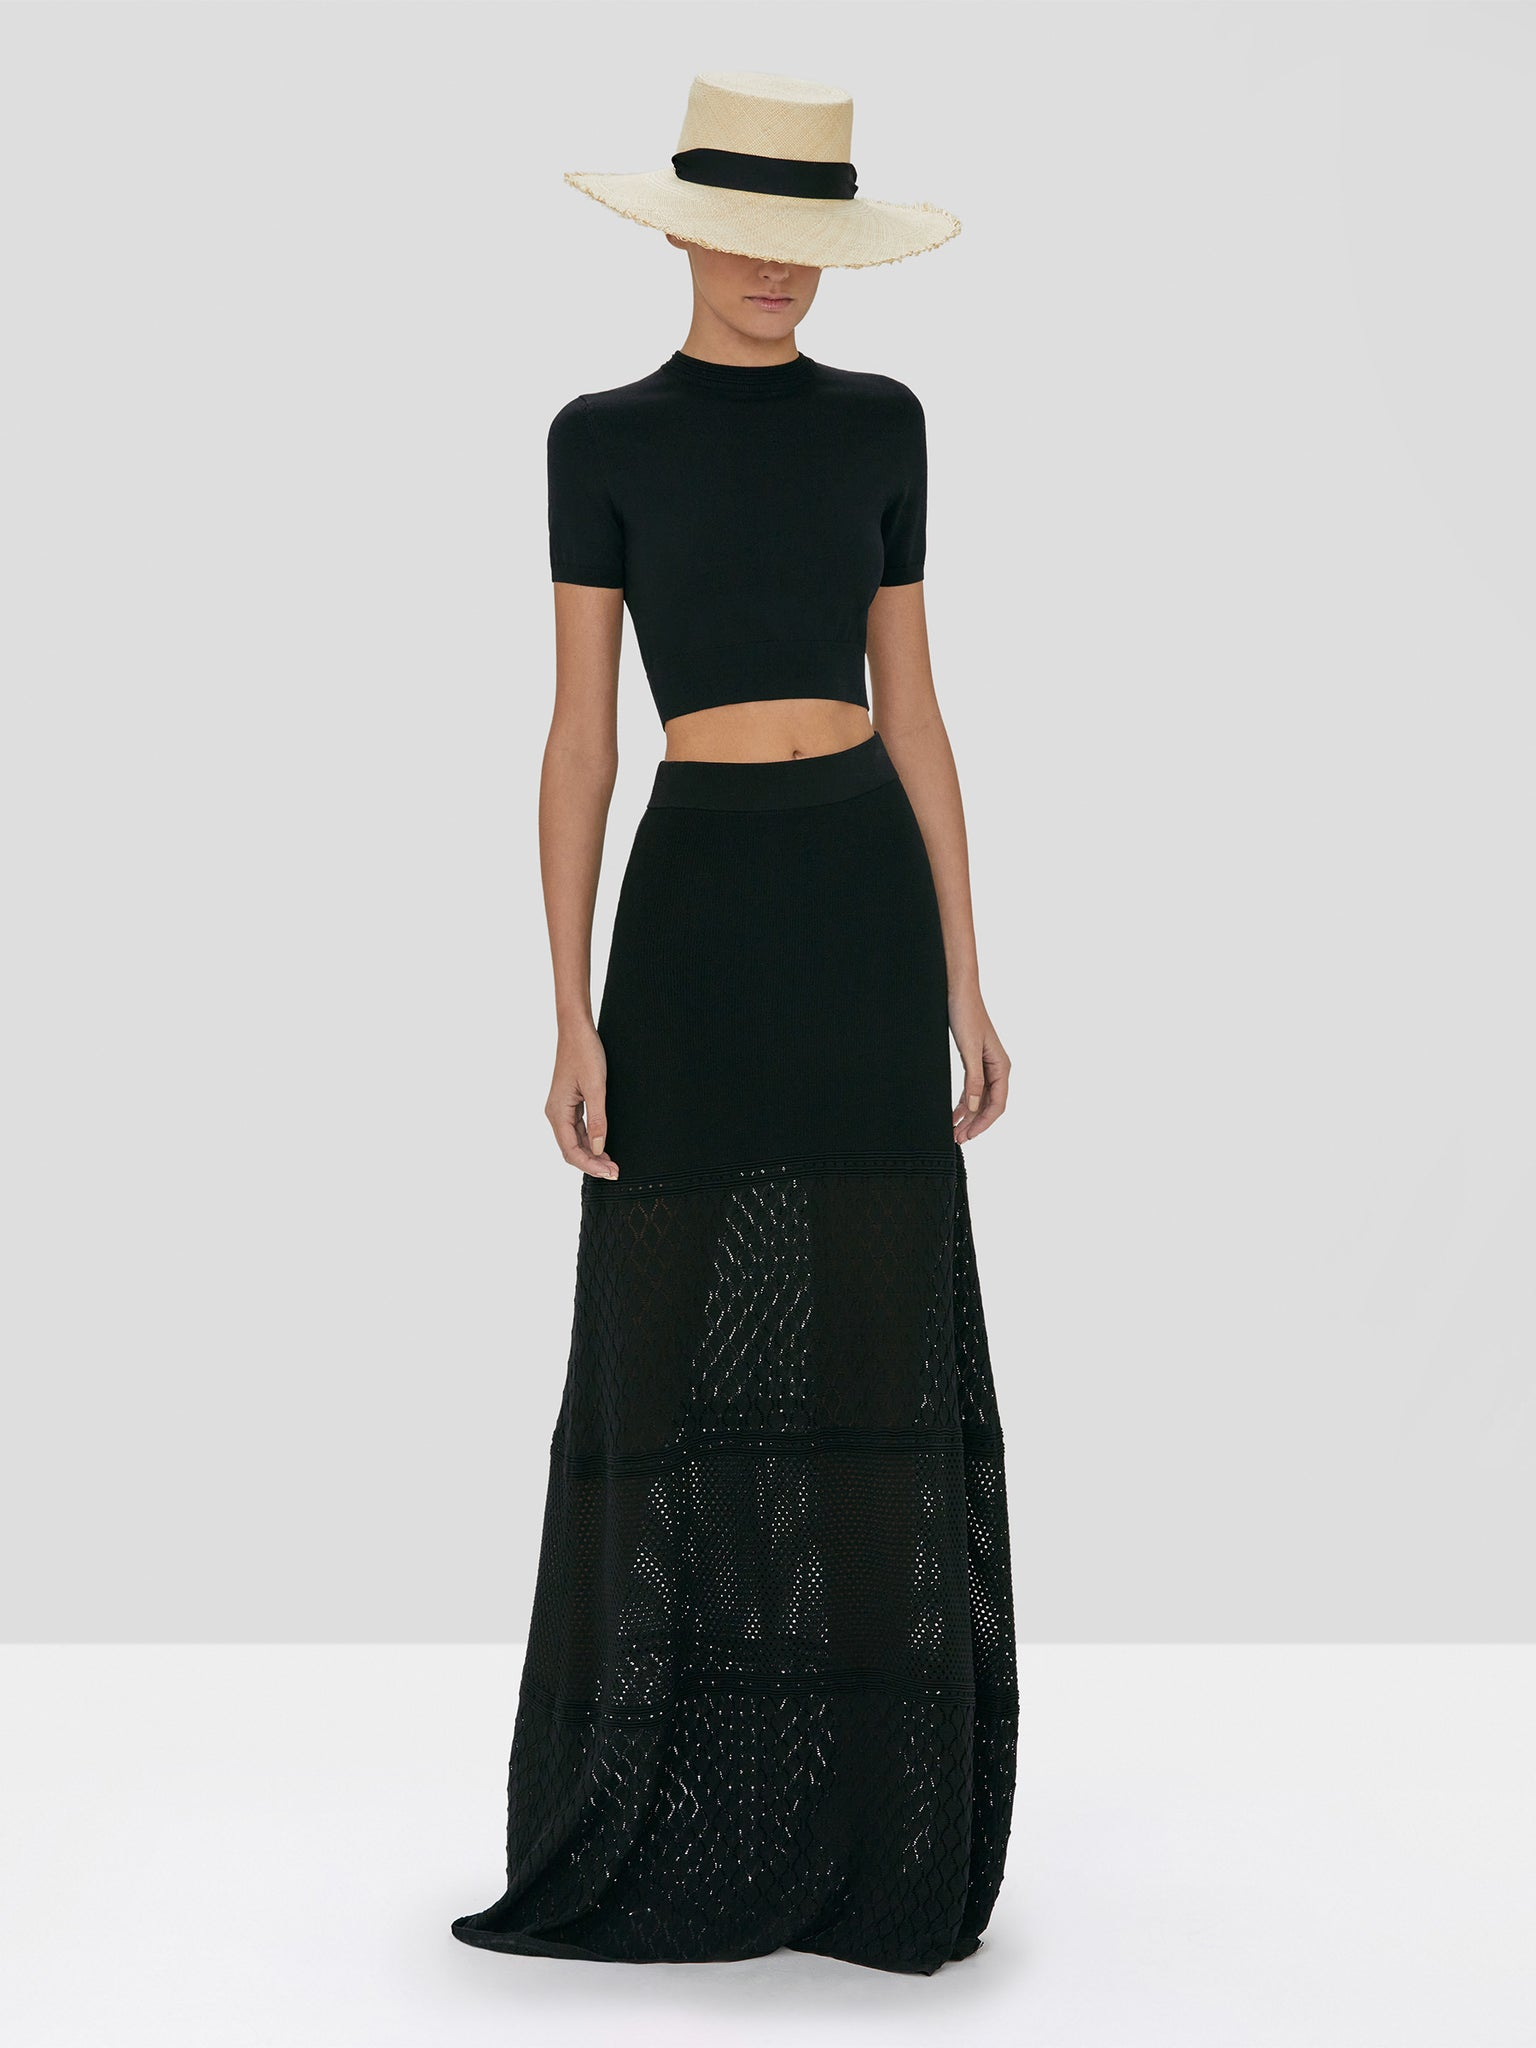 Alexis Finzi Crop Top and Ecco Skirt in Black from the Spring Summer 2020 Collection